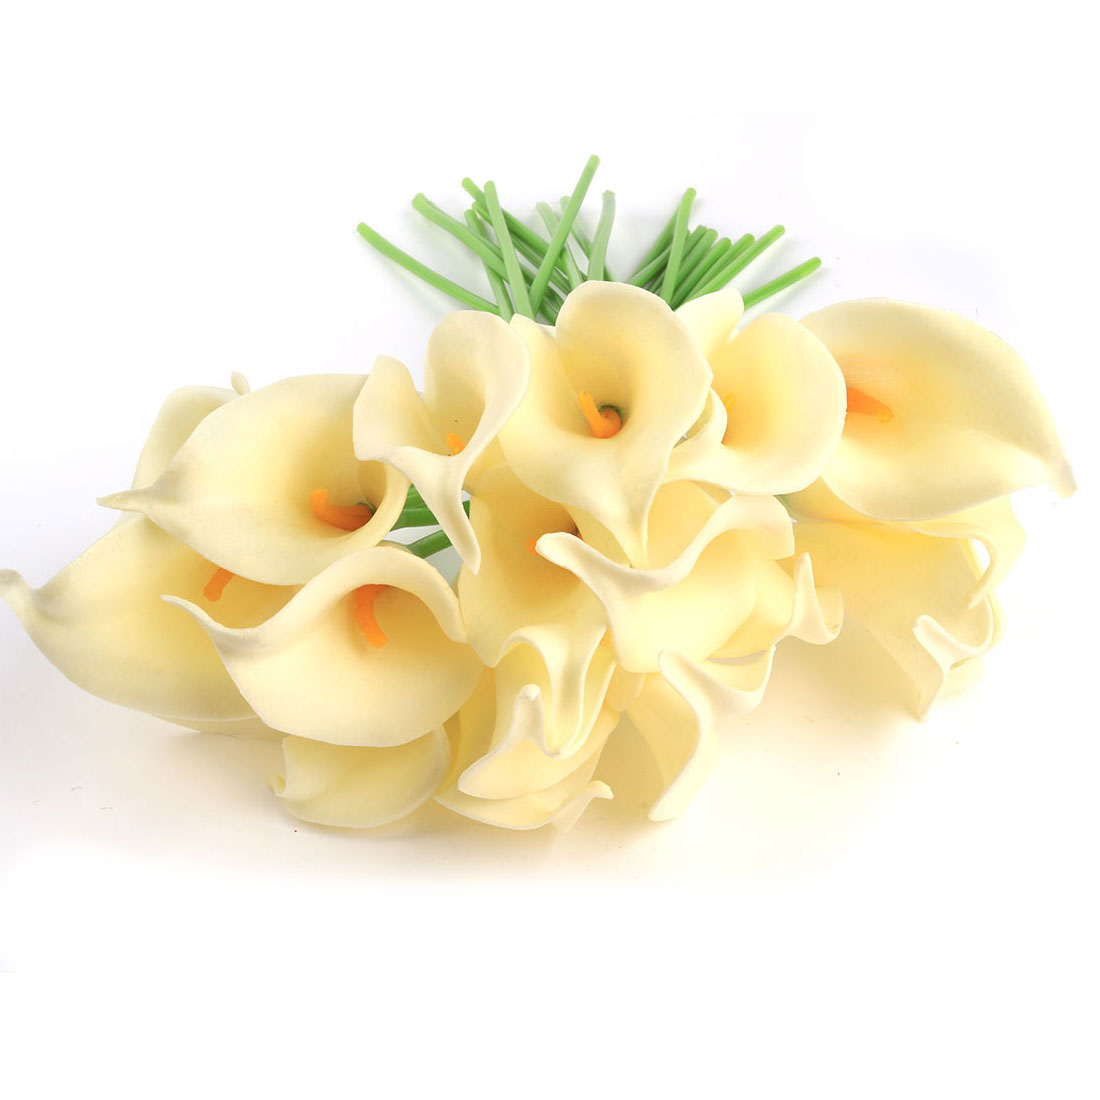 20 Pcs Calla Lily Bridal Wedding  Bouquets Party Decor Bouquet Latex Touch Artificial Flower